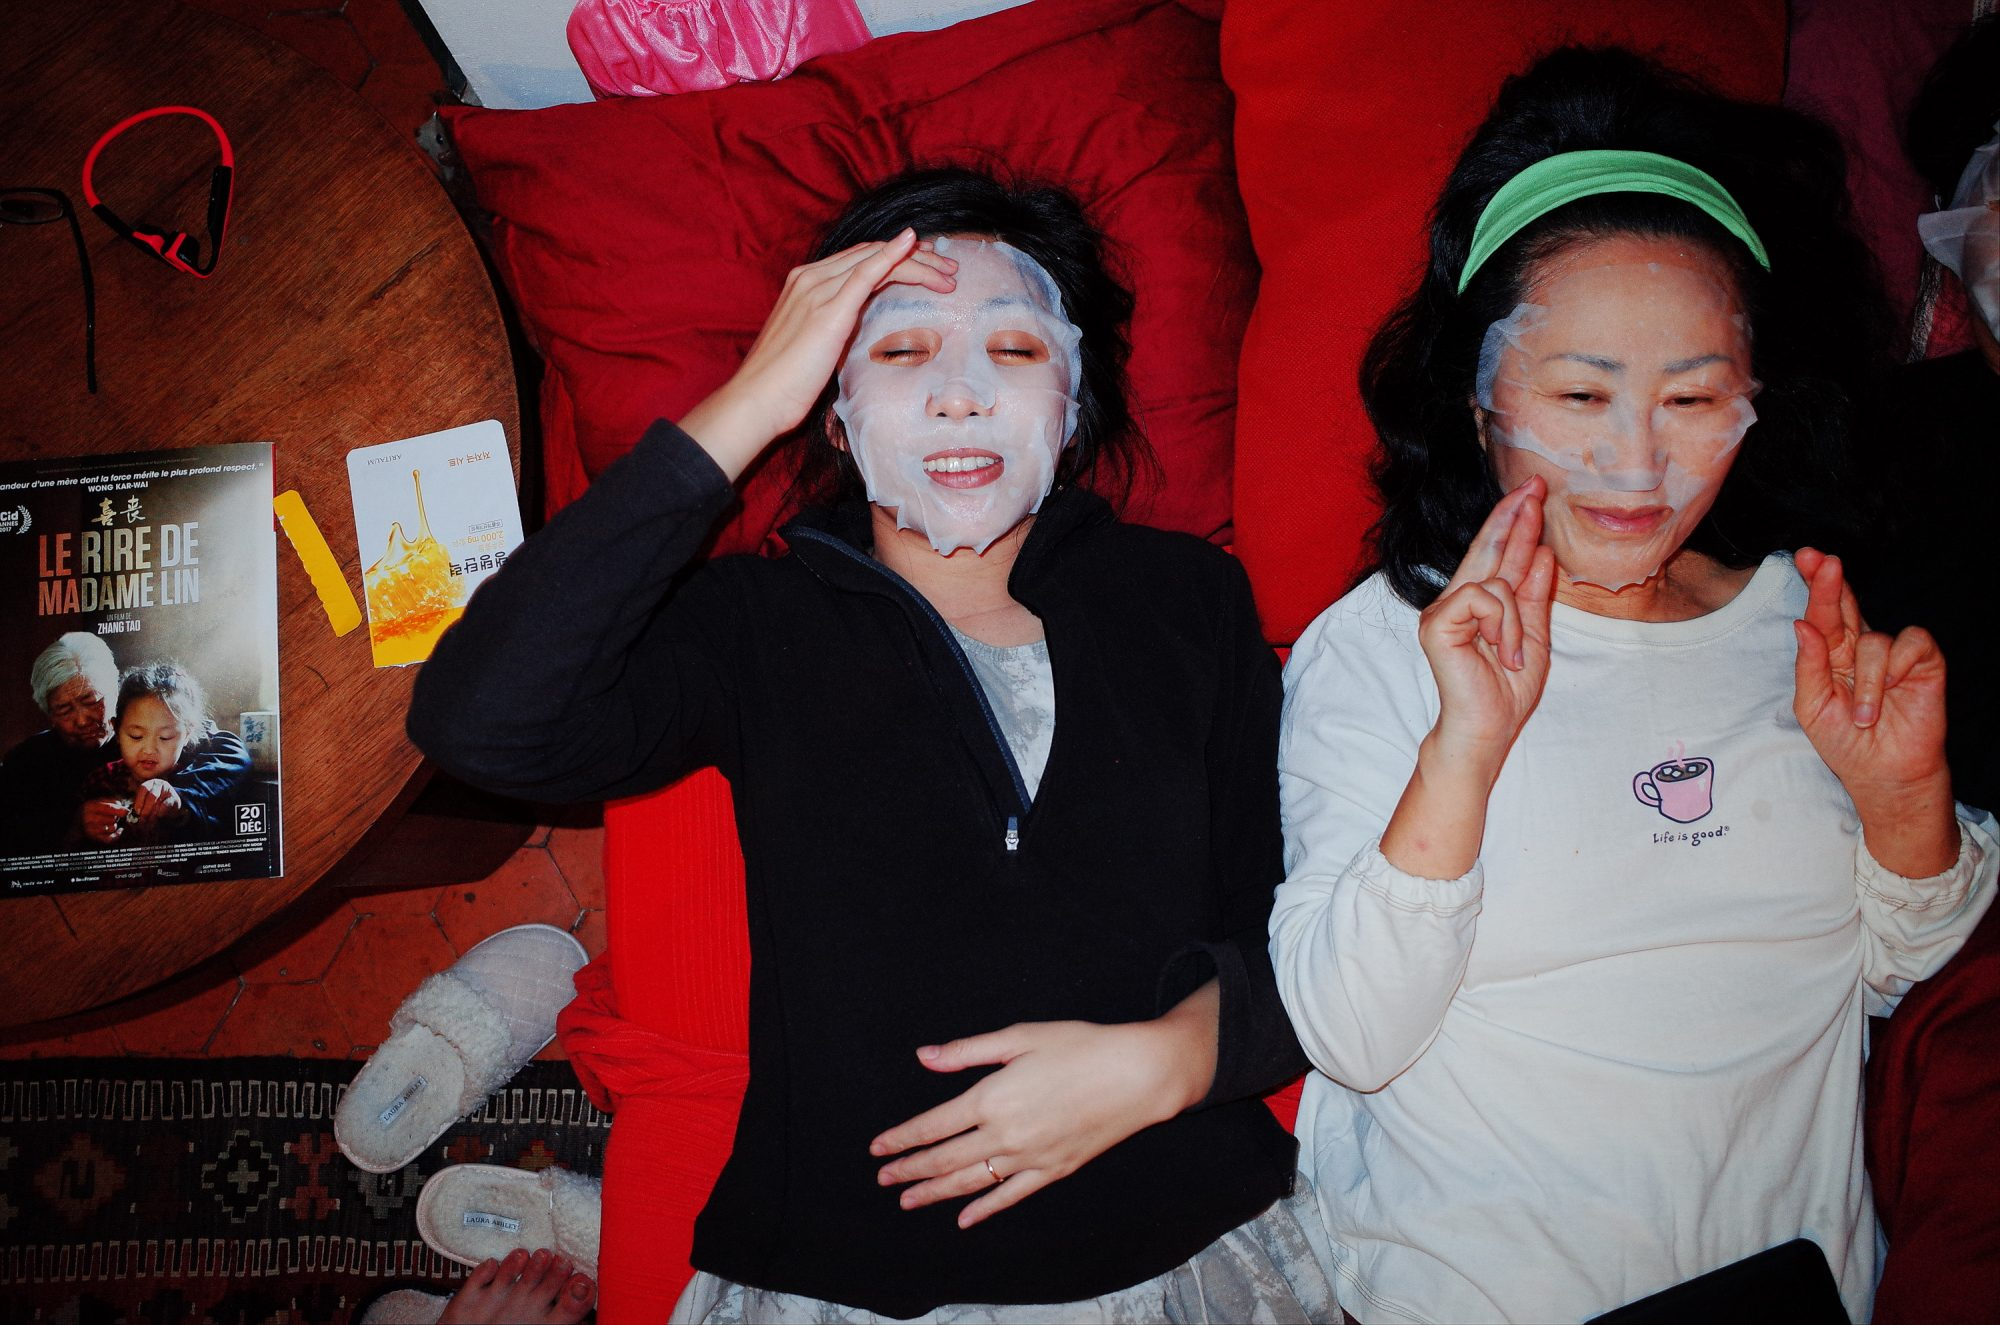 Cindy and my mom with face masks. Marseille, 2018